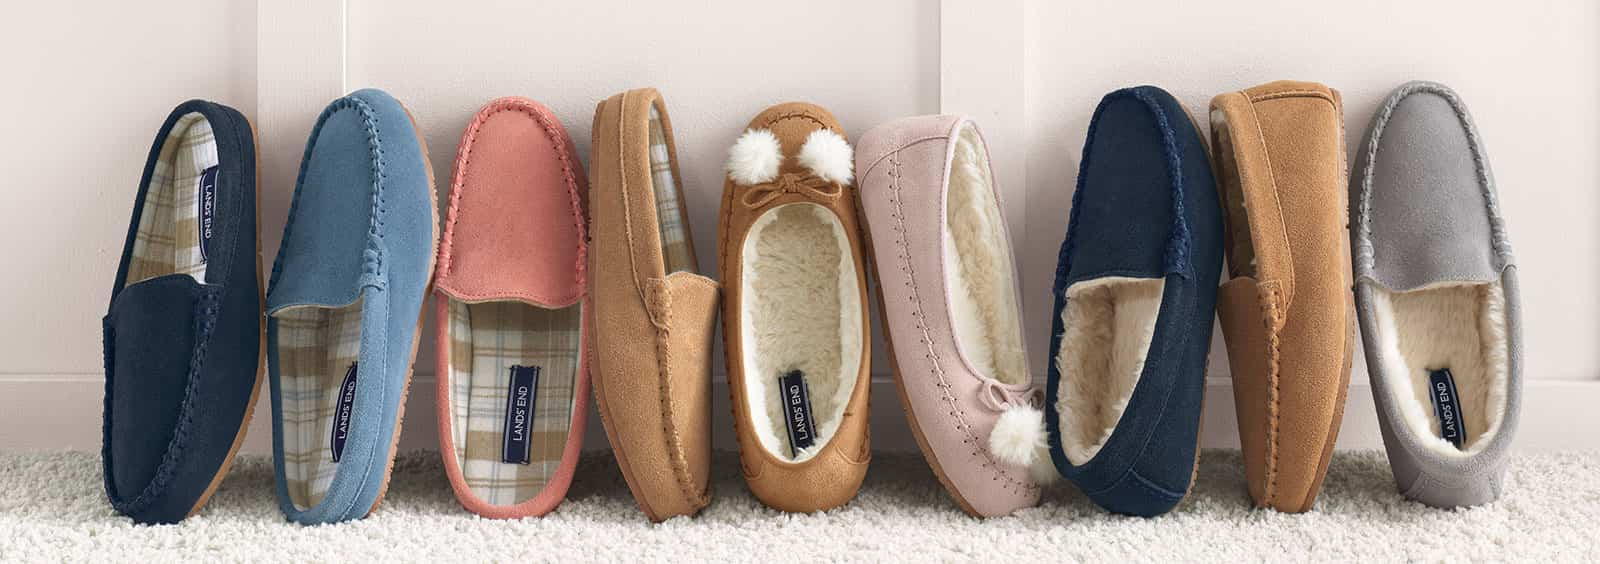 How to Care for Slippers | Lands' End